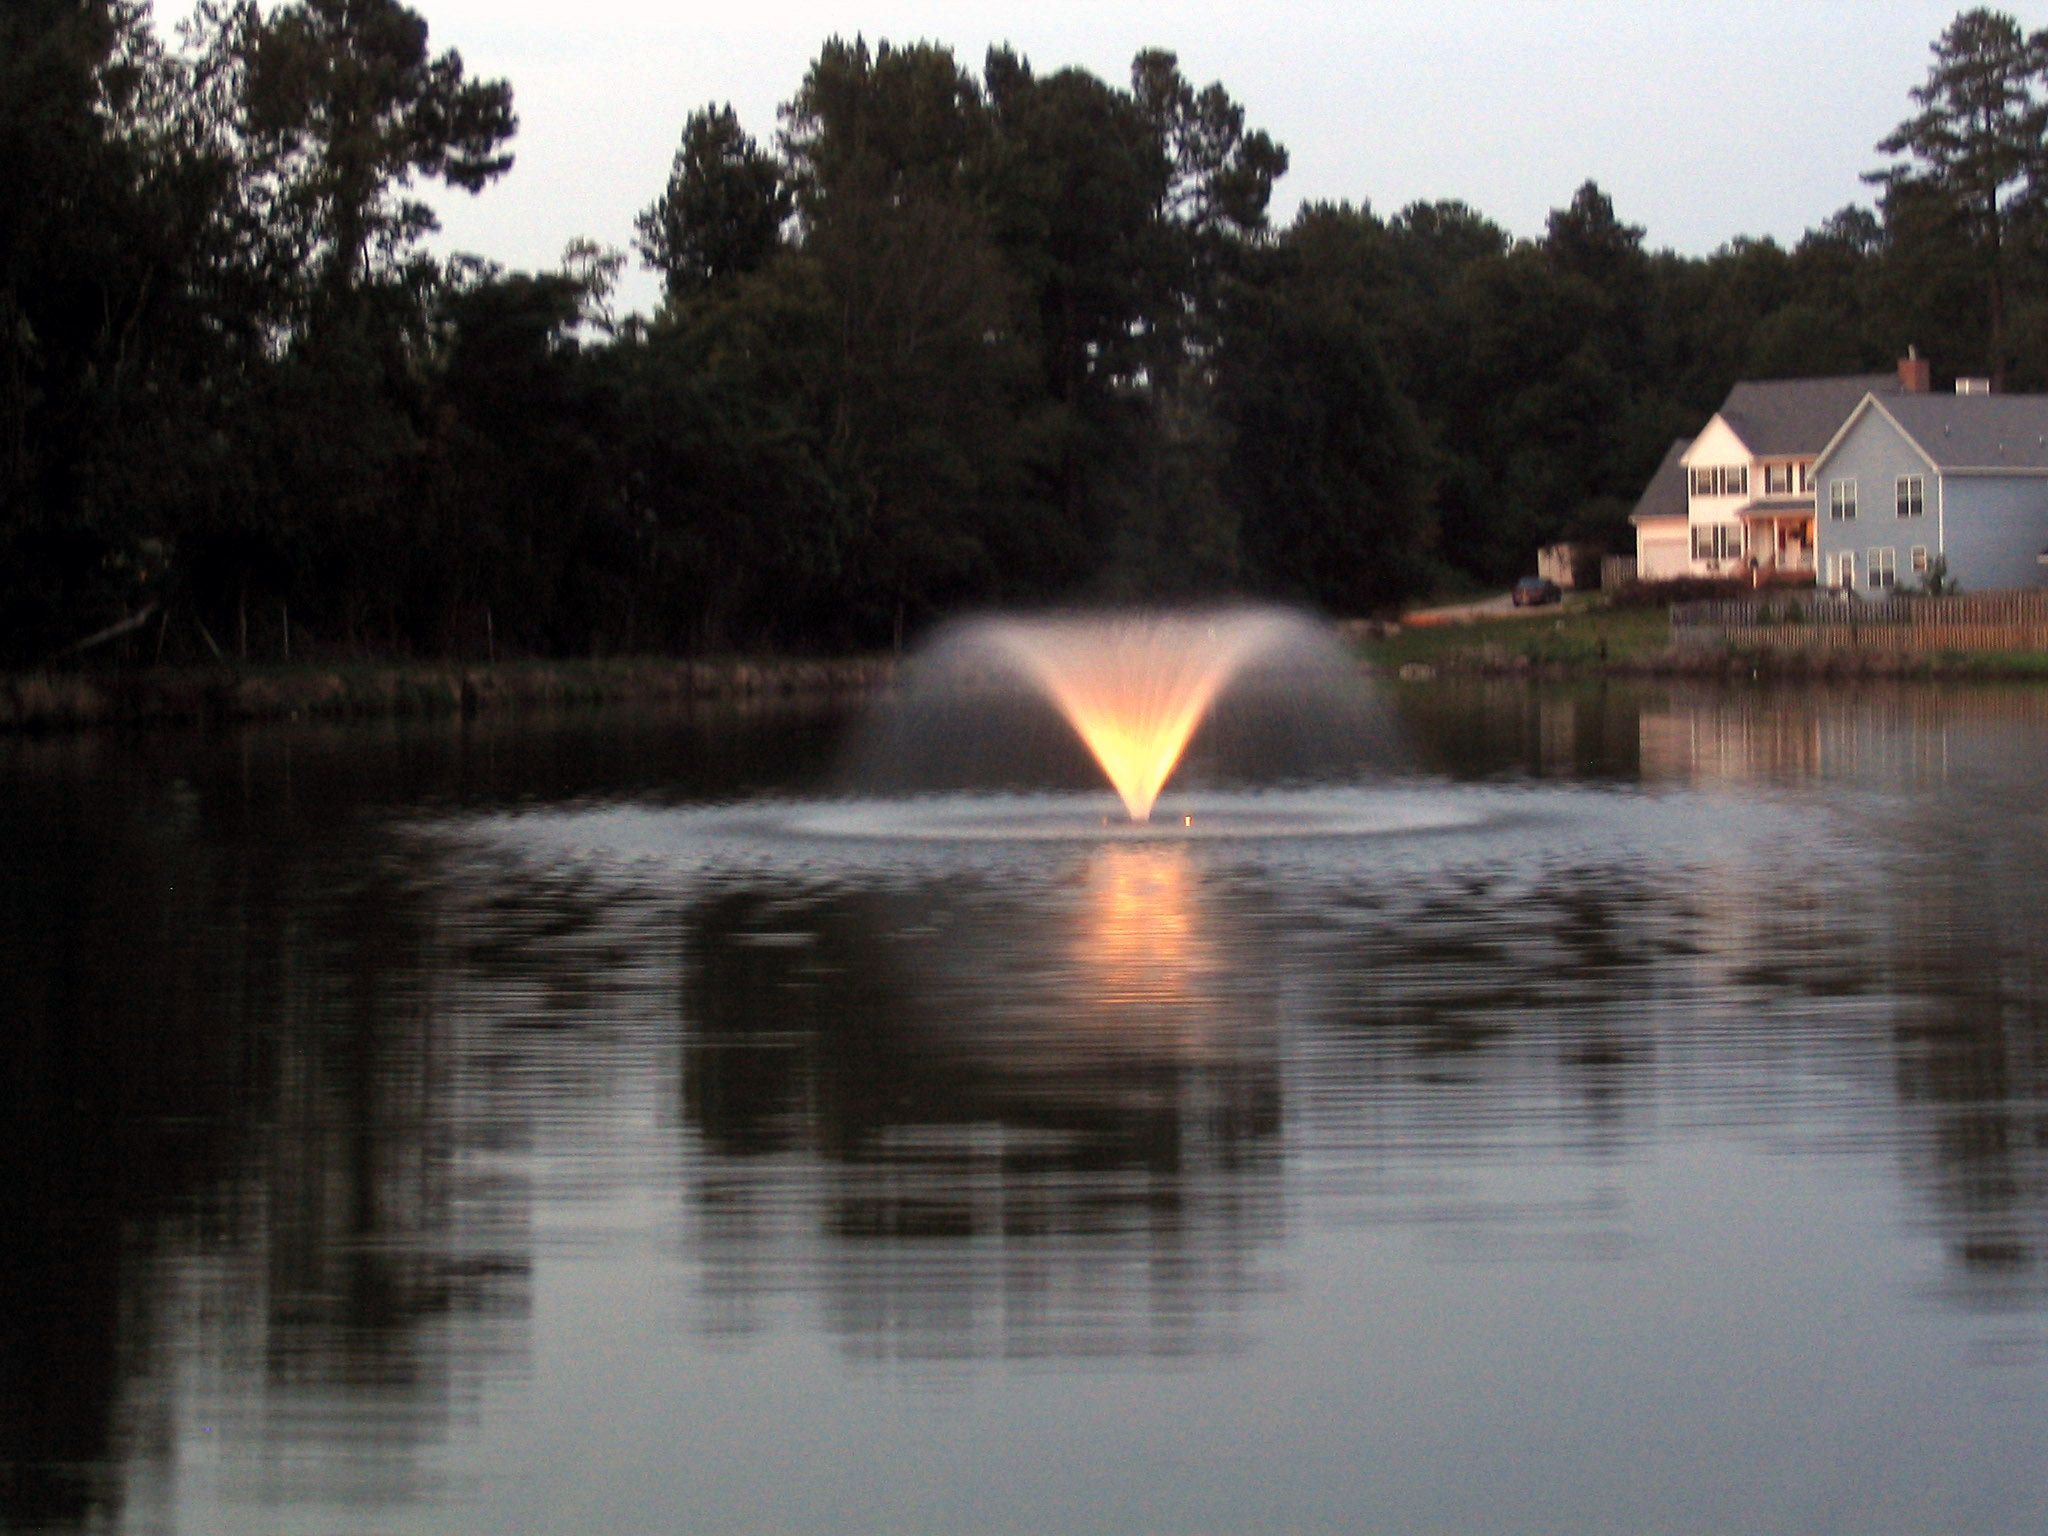 Kasco V-Shaped Aerator with Lights